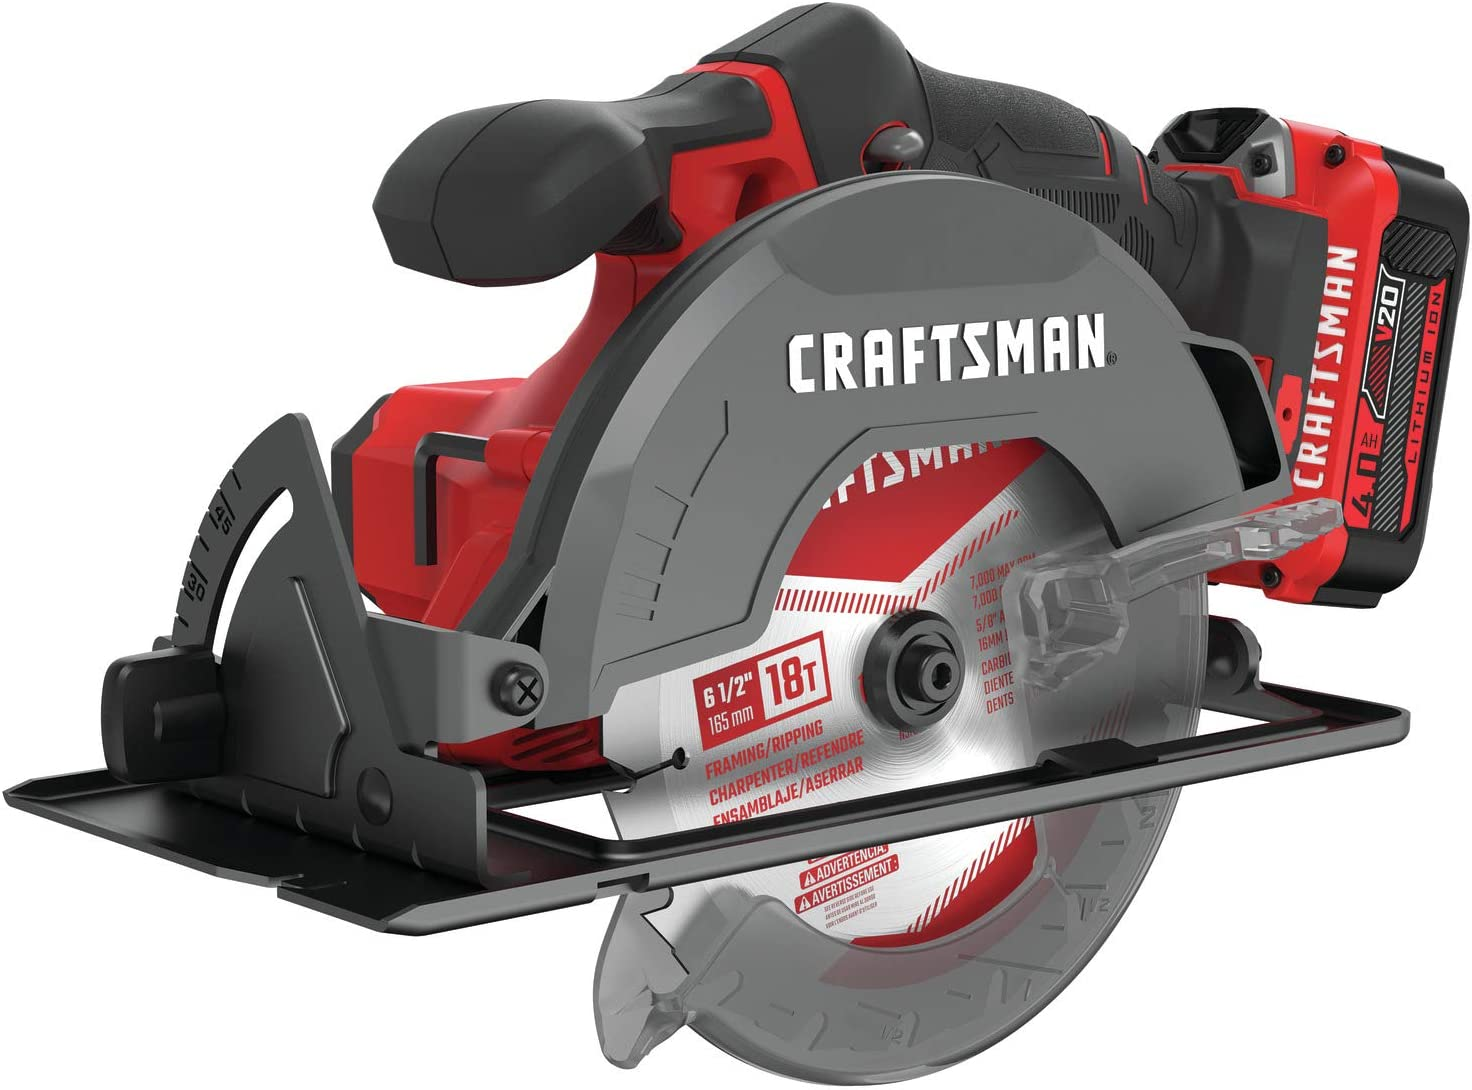 CRAFTSMAN 6-1/2-Inch Cordless Circular Saw Kit